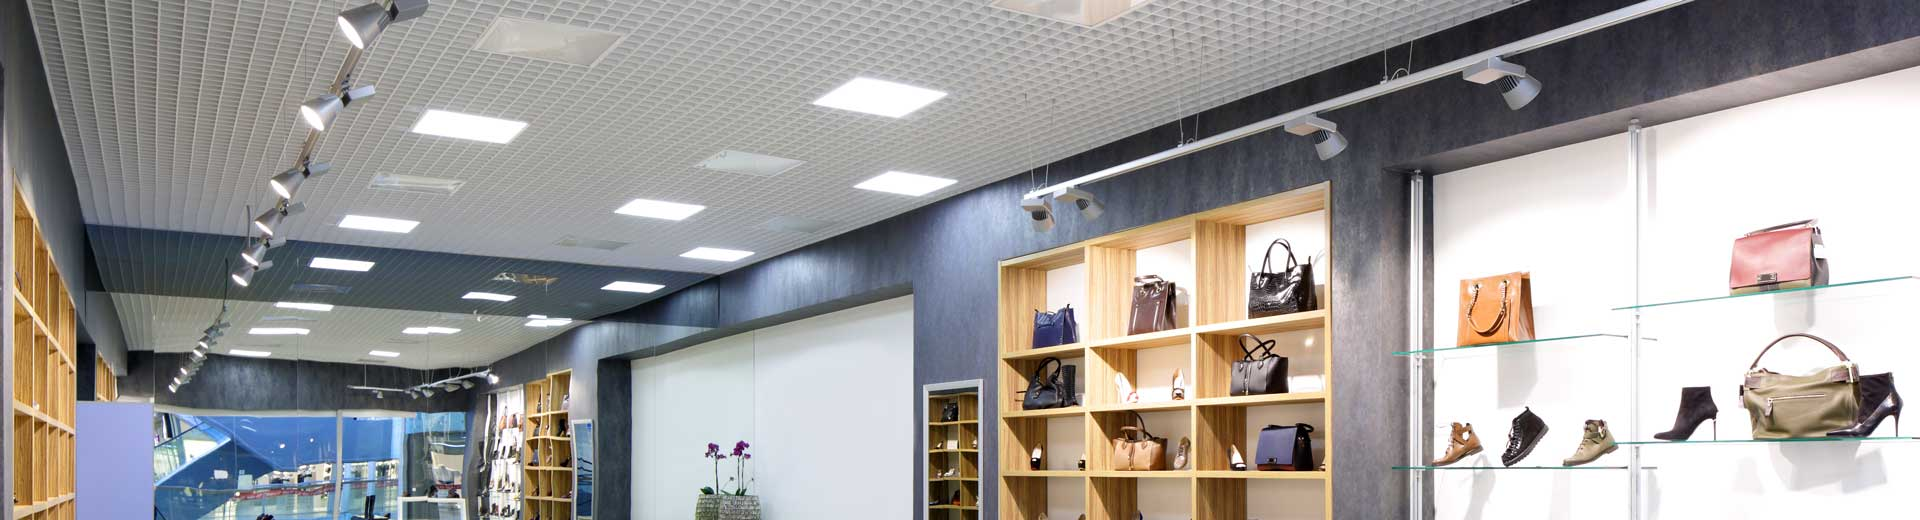 Retail Surface LED Lighting